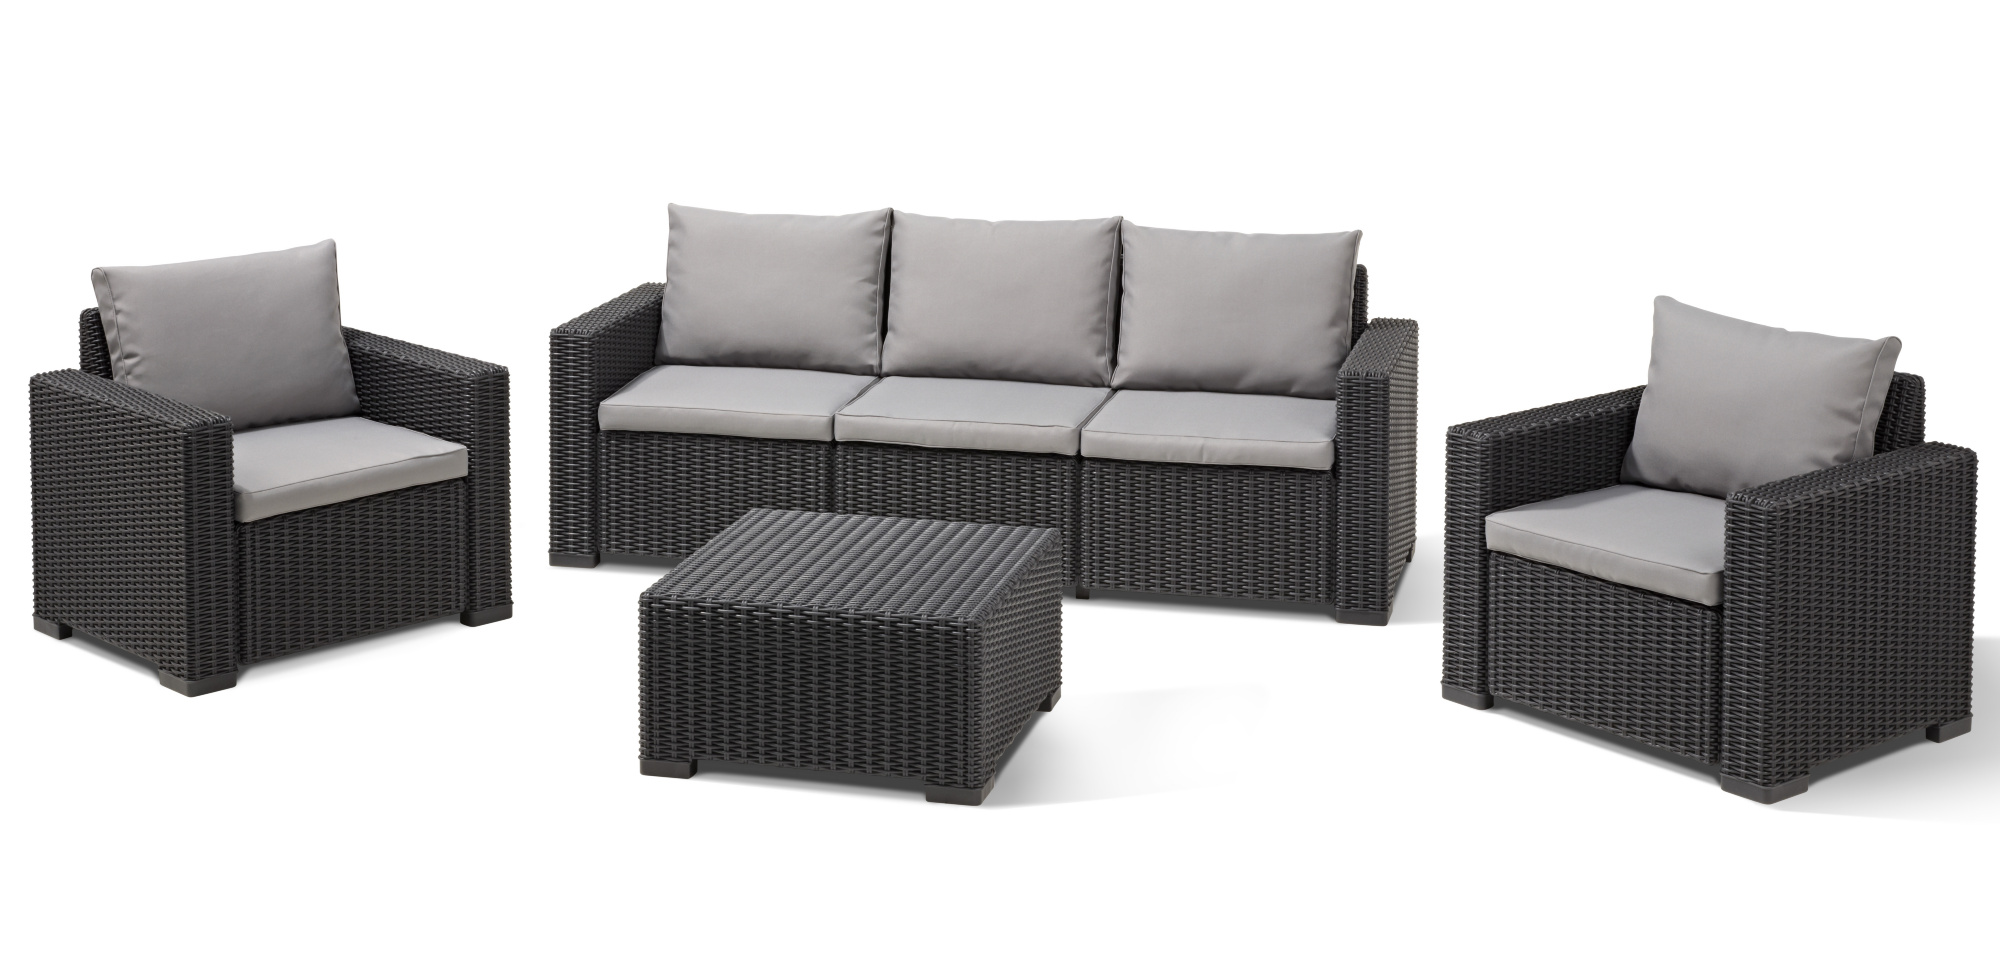 Loungeset | Lounge sets   Allibert